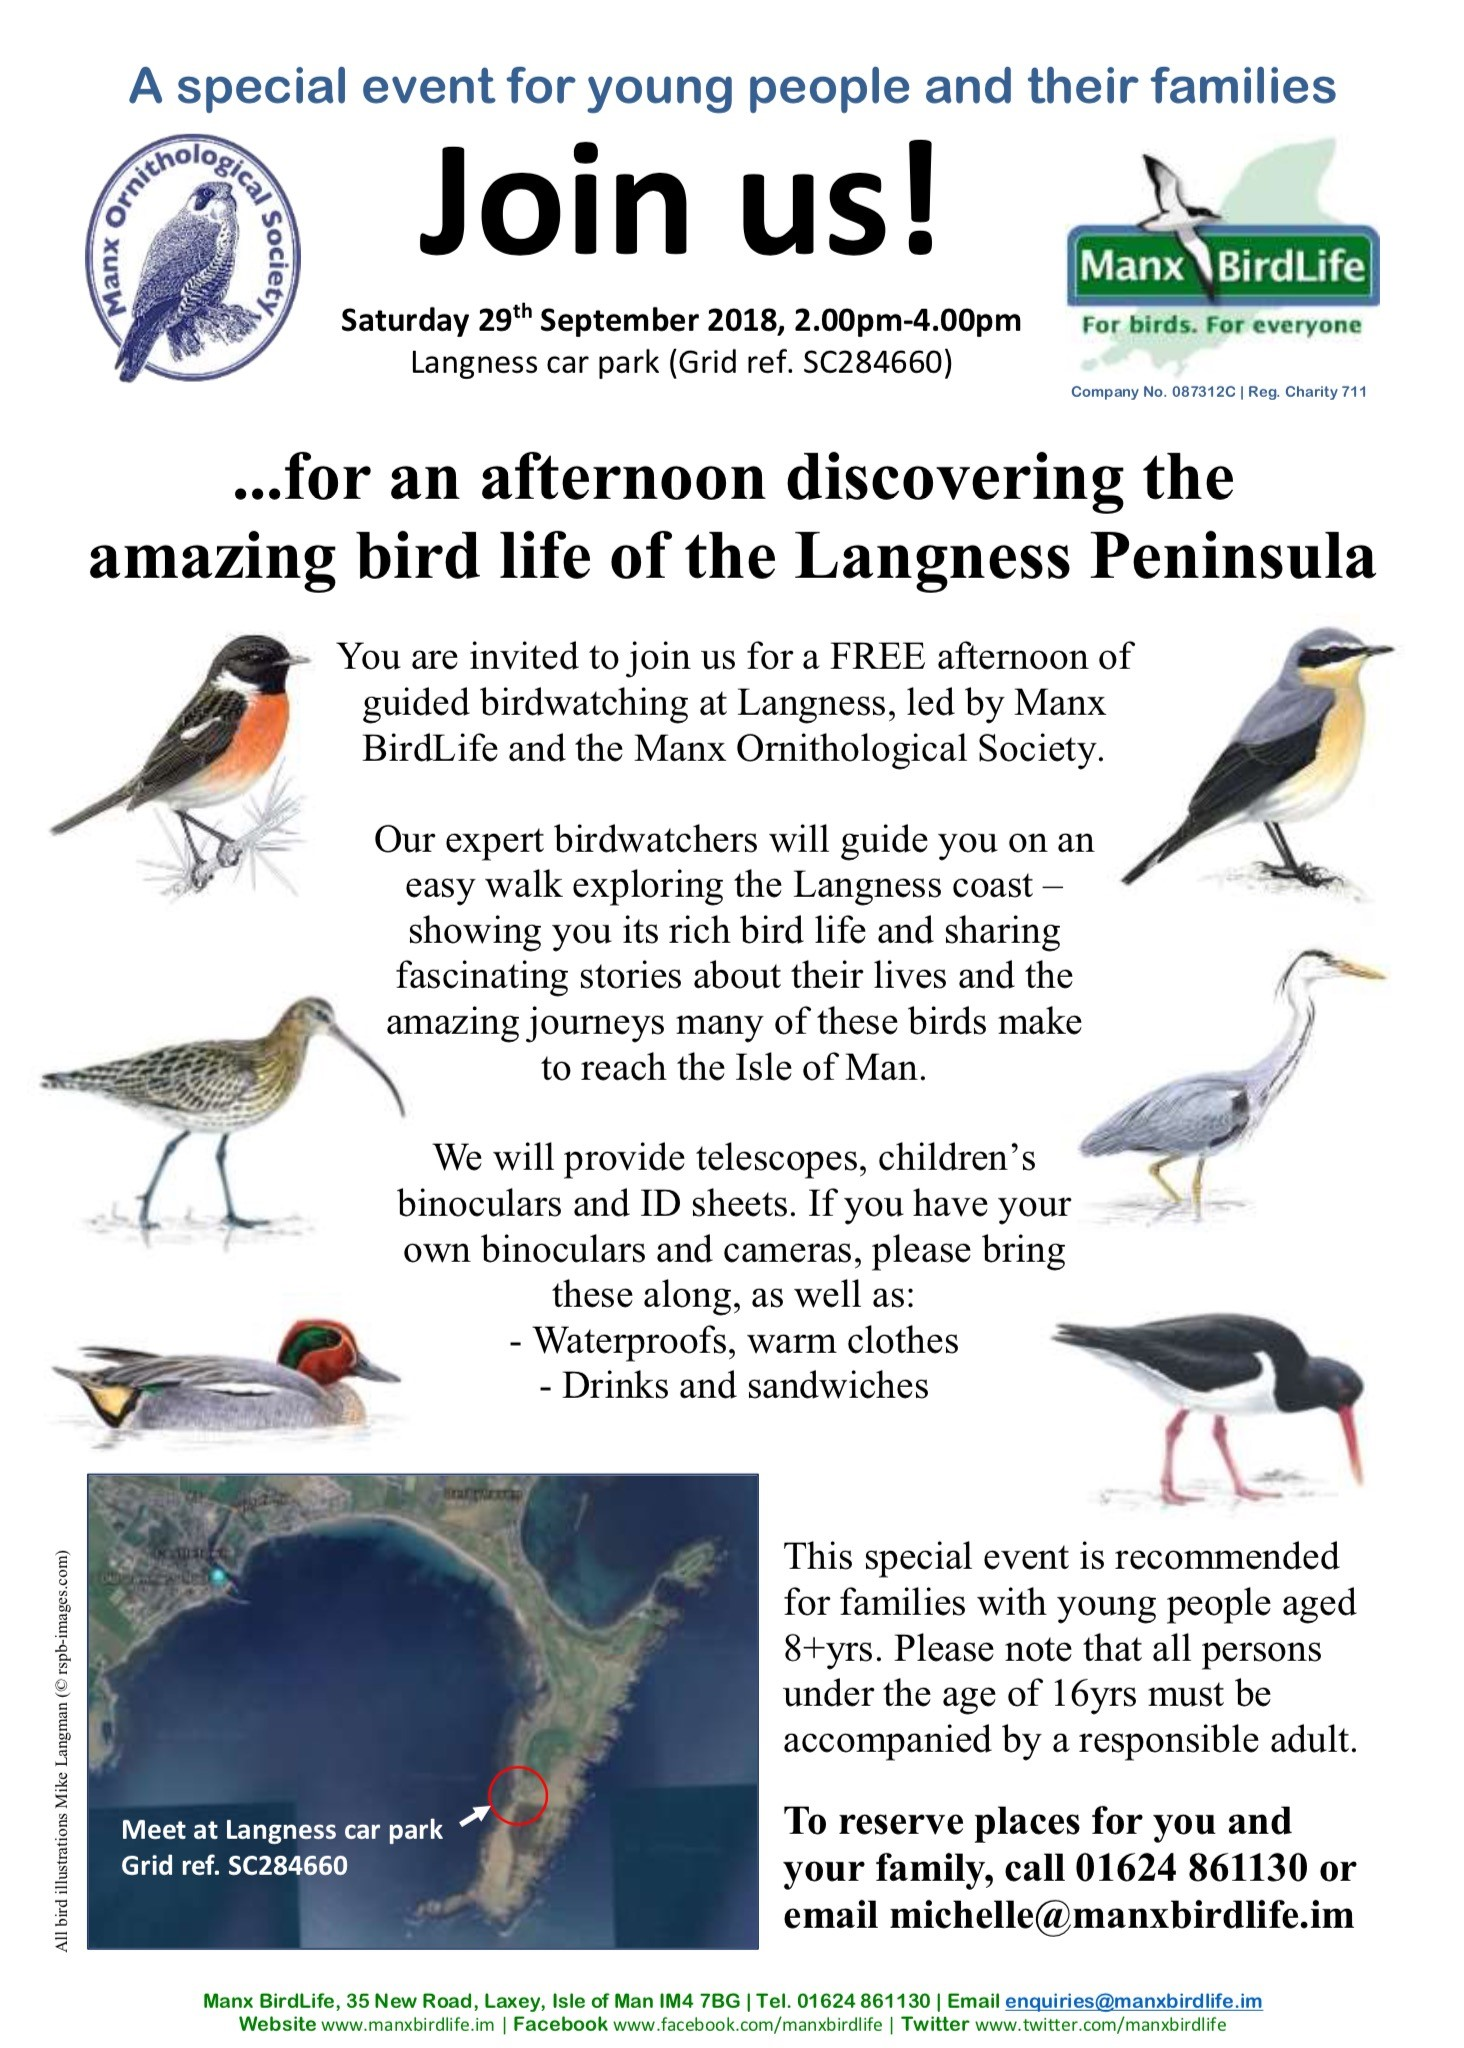 Join us for a special family event discovering the bird life of the Langness Peninsula on Saturday 29th September from 2.00-4.00pm. Meet at Langness car park (SC284660) from 1.30pm. All welcome. Attendance free of charge.